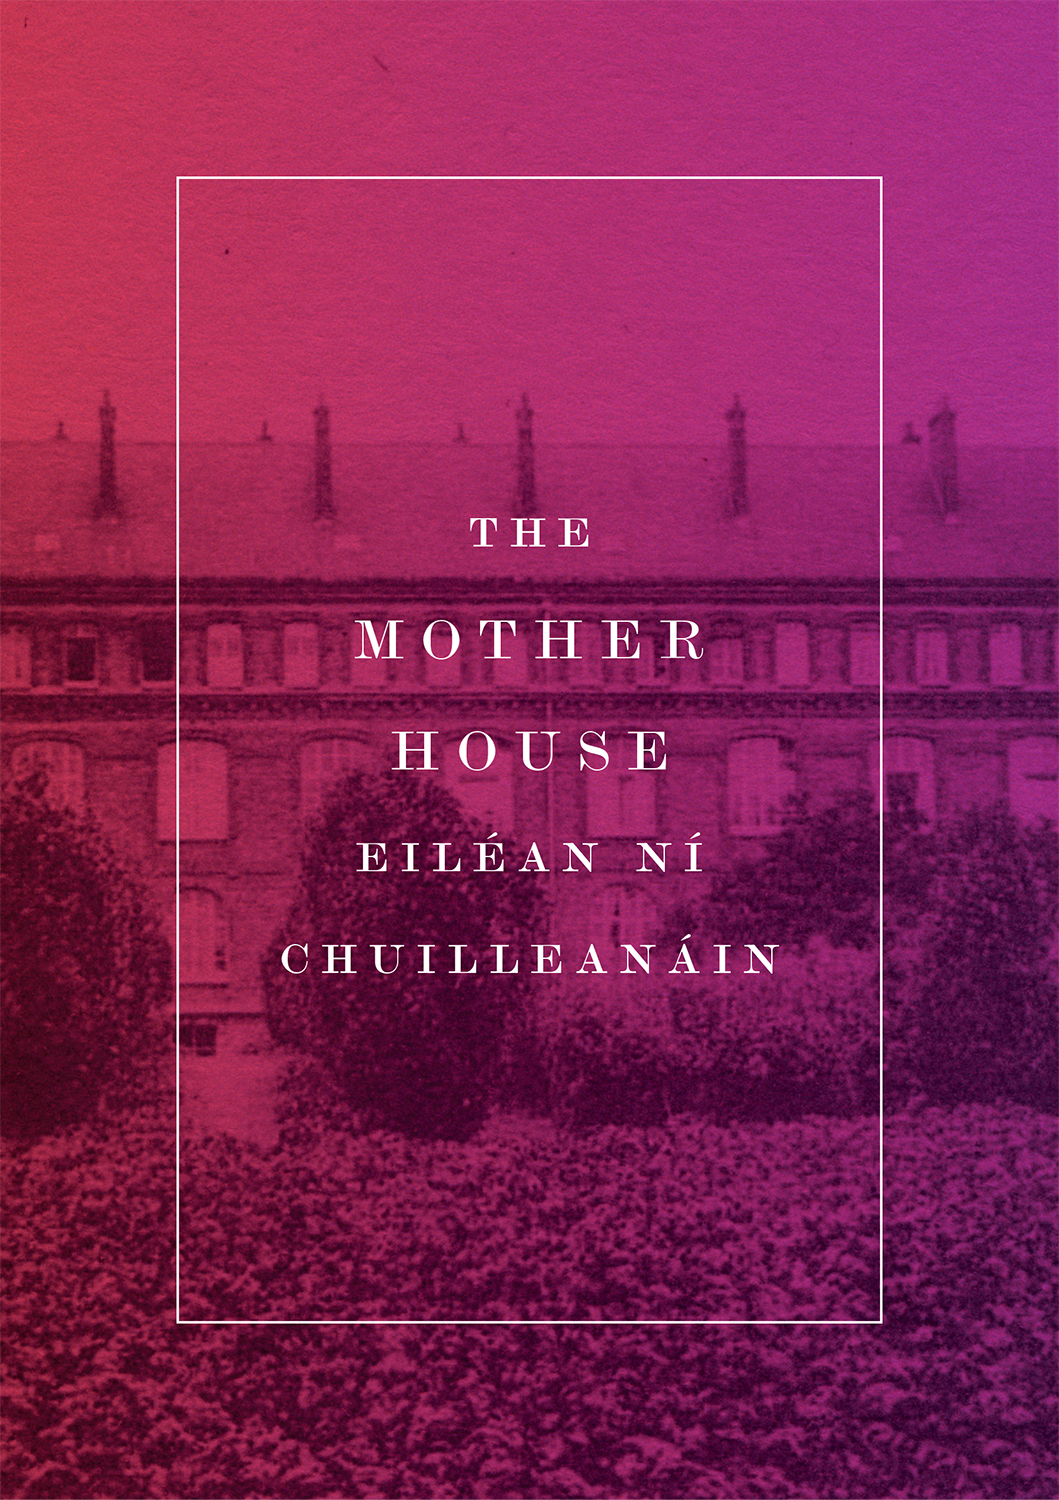 The Mother House by Eiléan Ní Chuilleanáin